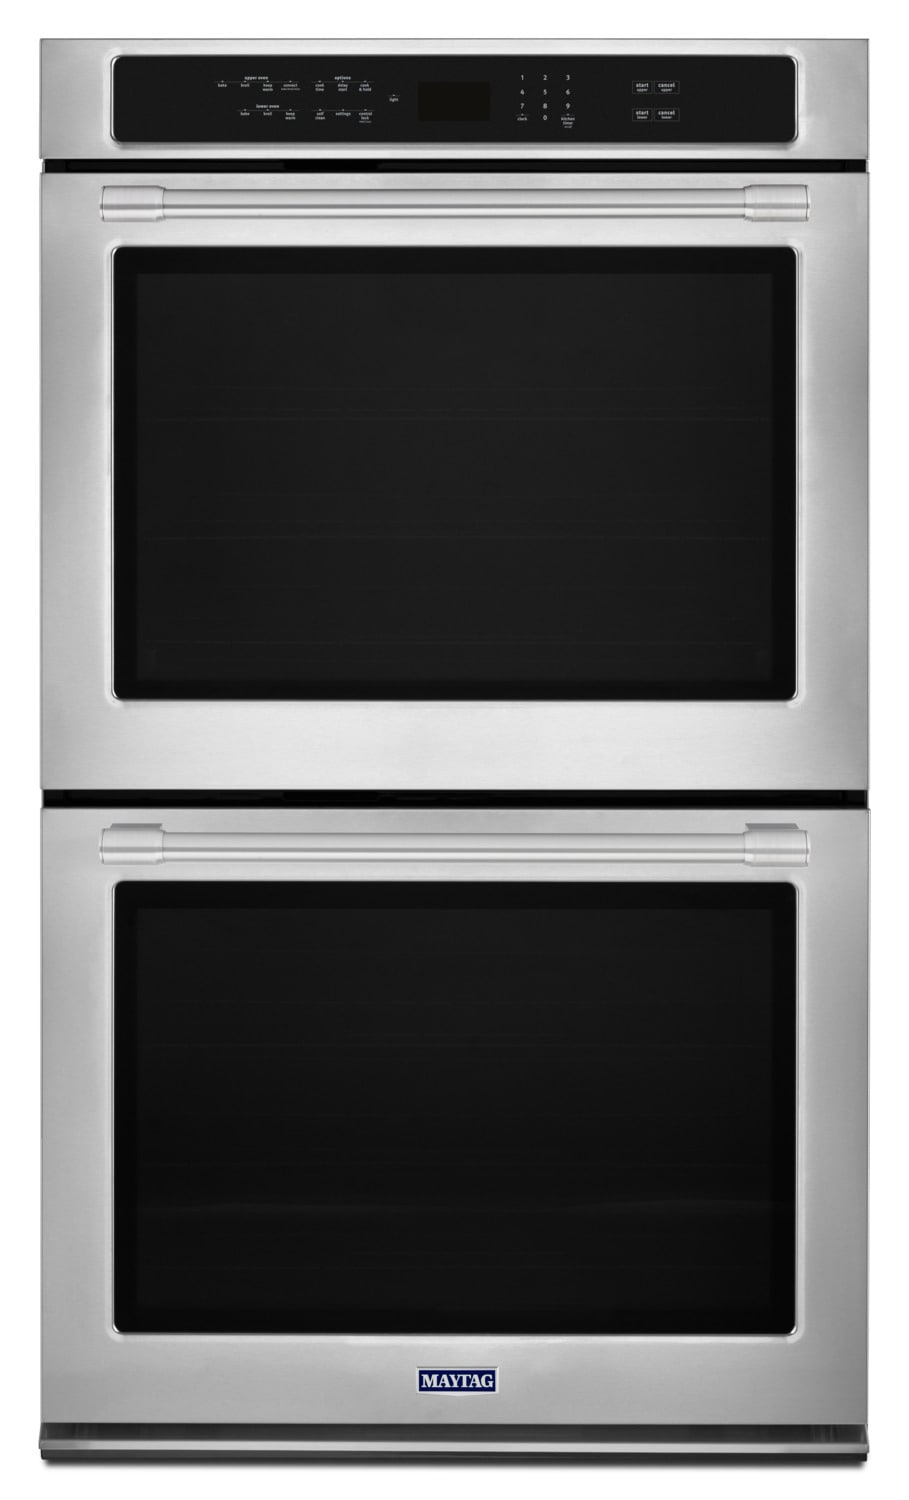 Maytag 10 Cu. Ft. Double Wall Oven – MEW9627FZ